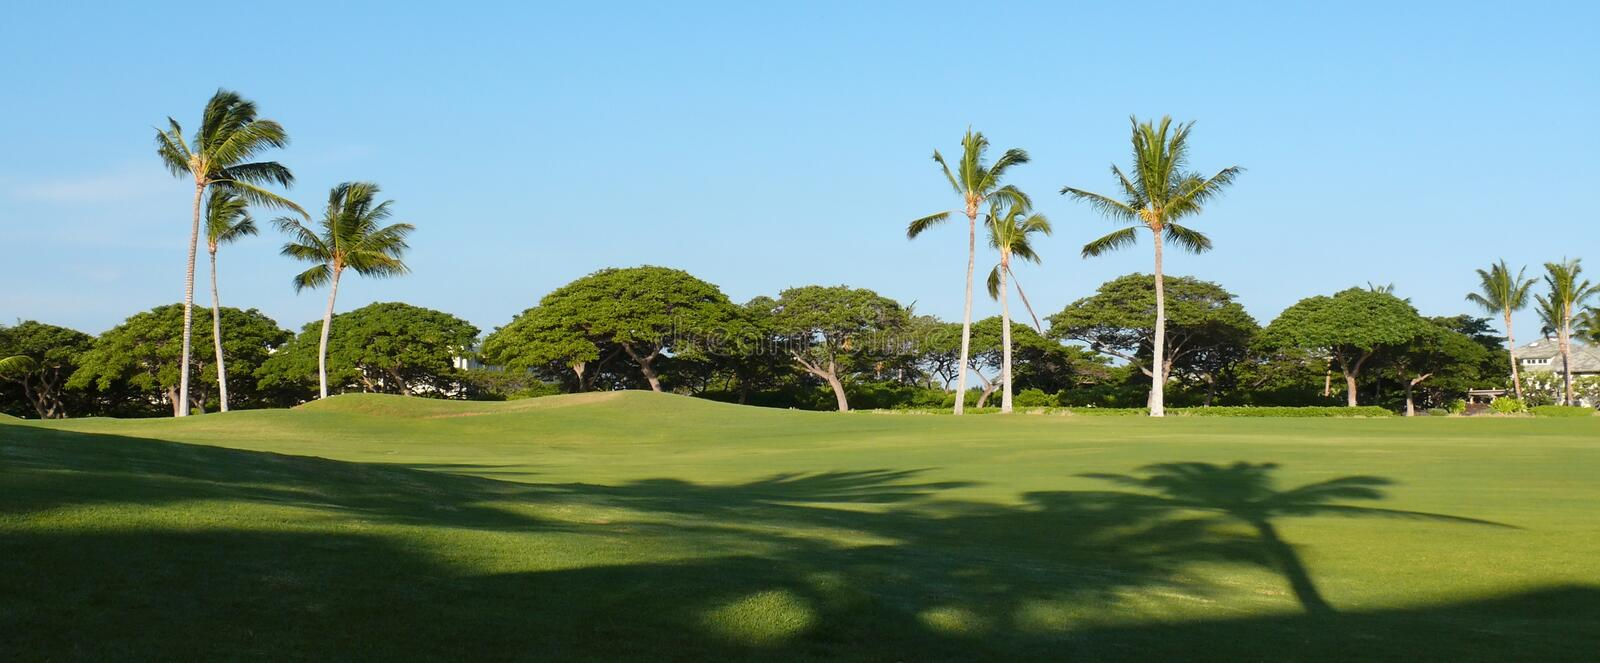 Palms and shadows on a golf field. Golf field near Kings plaza on Big Island royalty free stock images